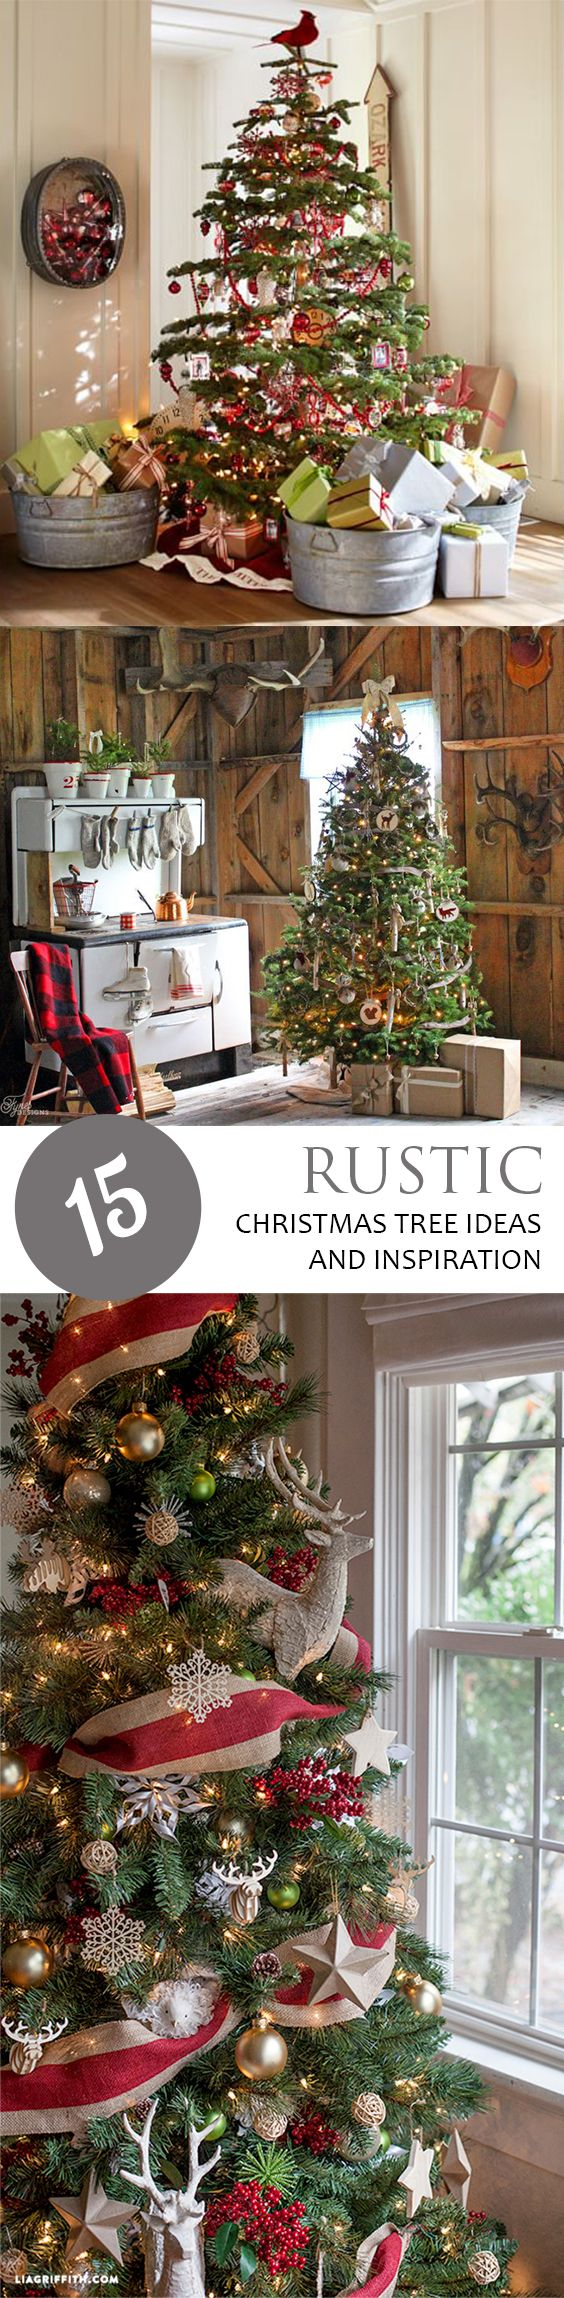 15 Rustic Christmas Tree Ideas and Inspiration